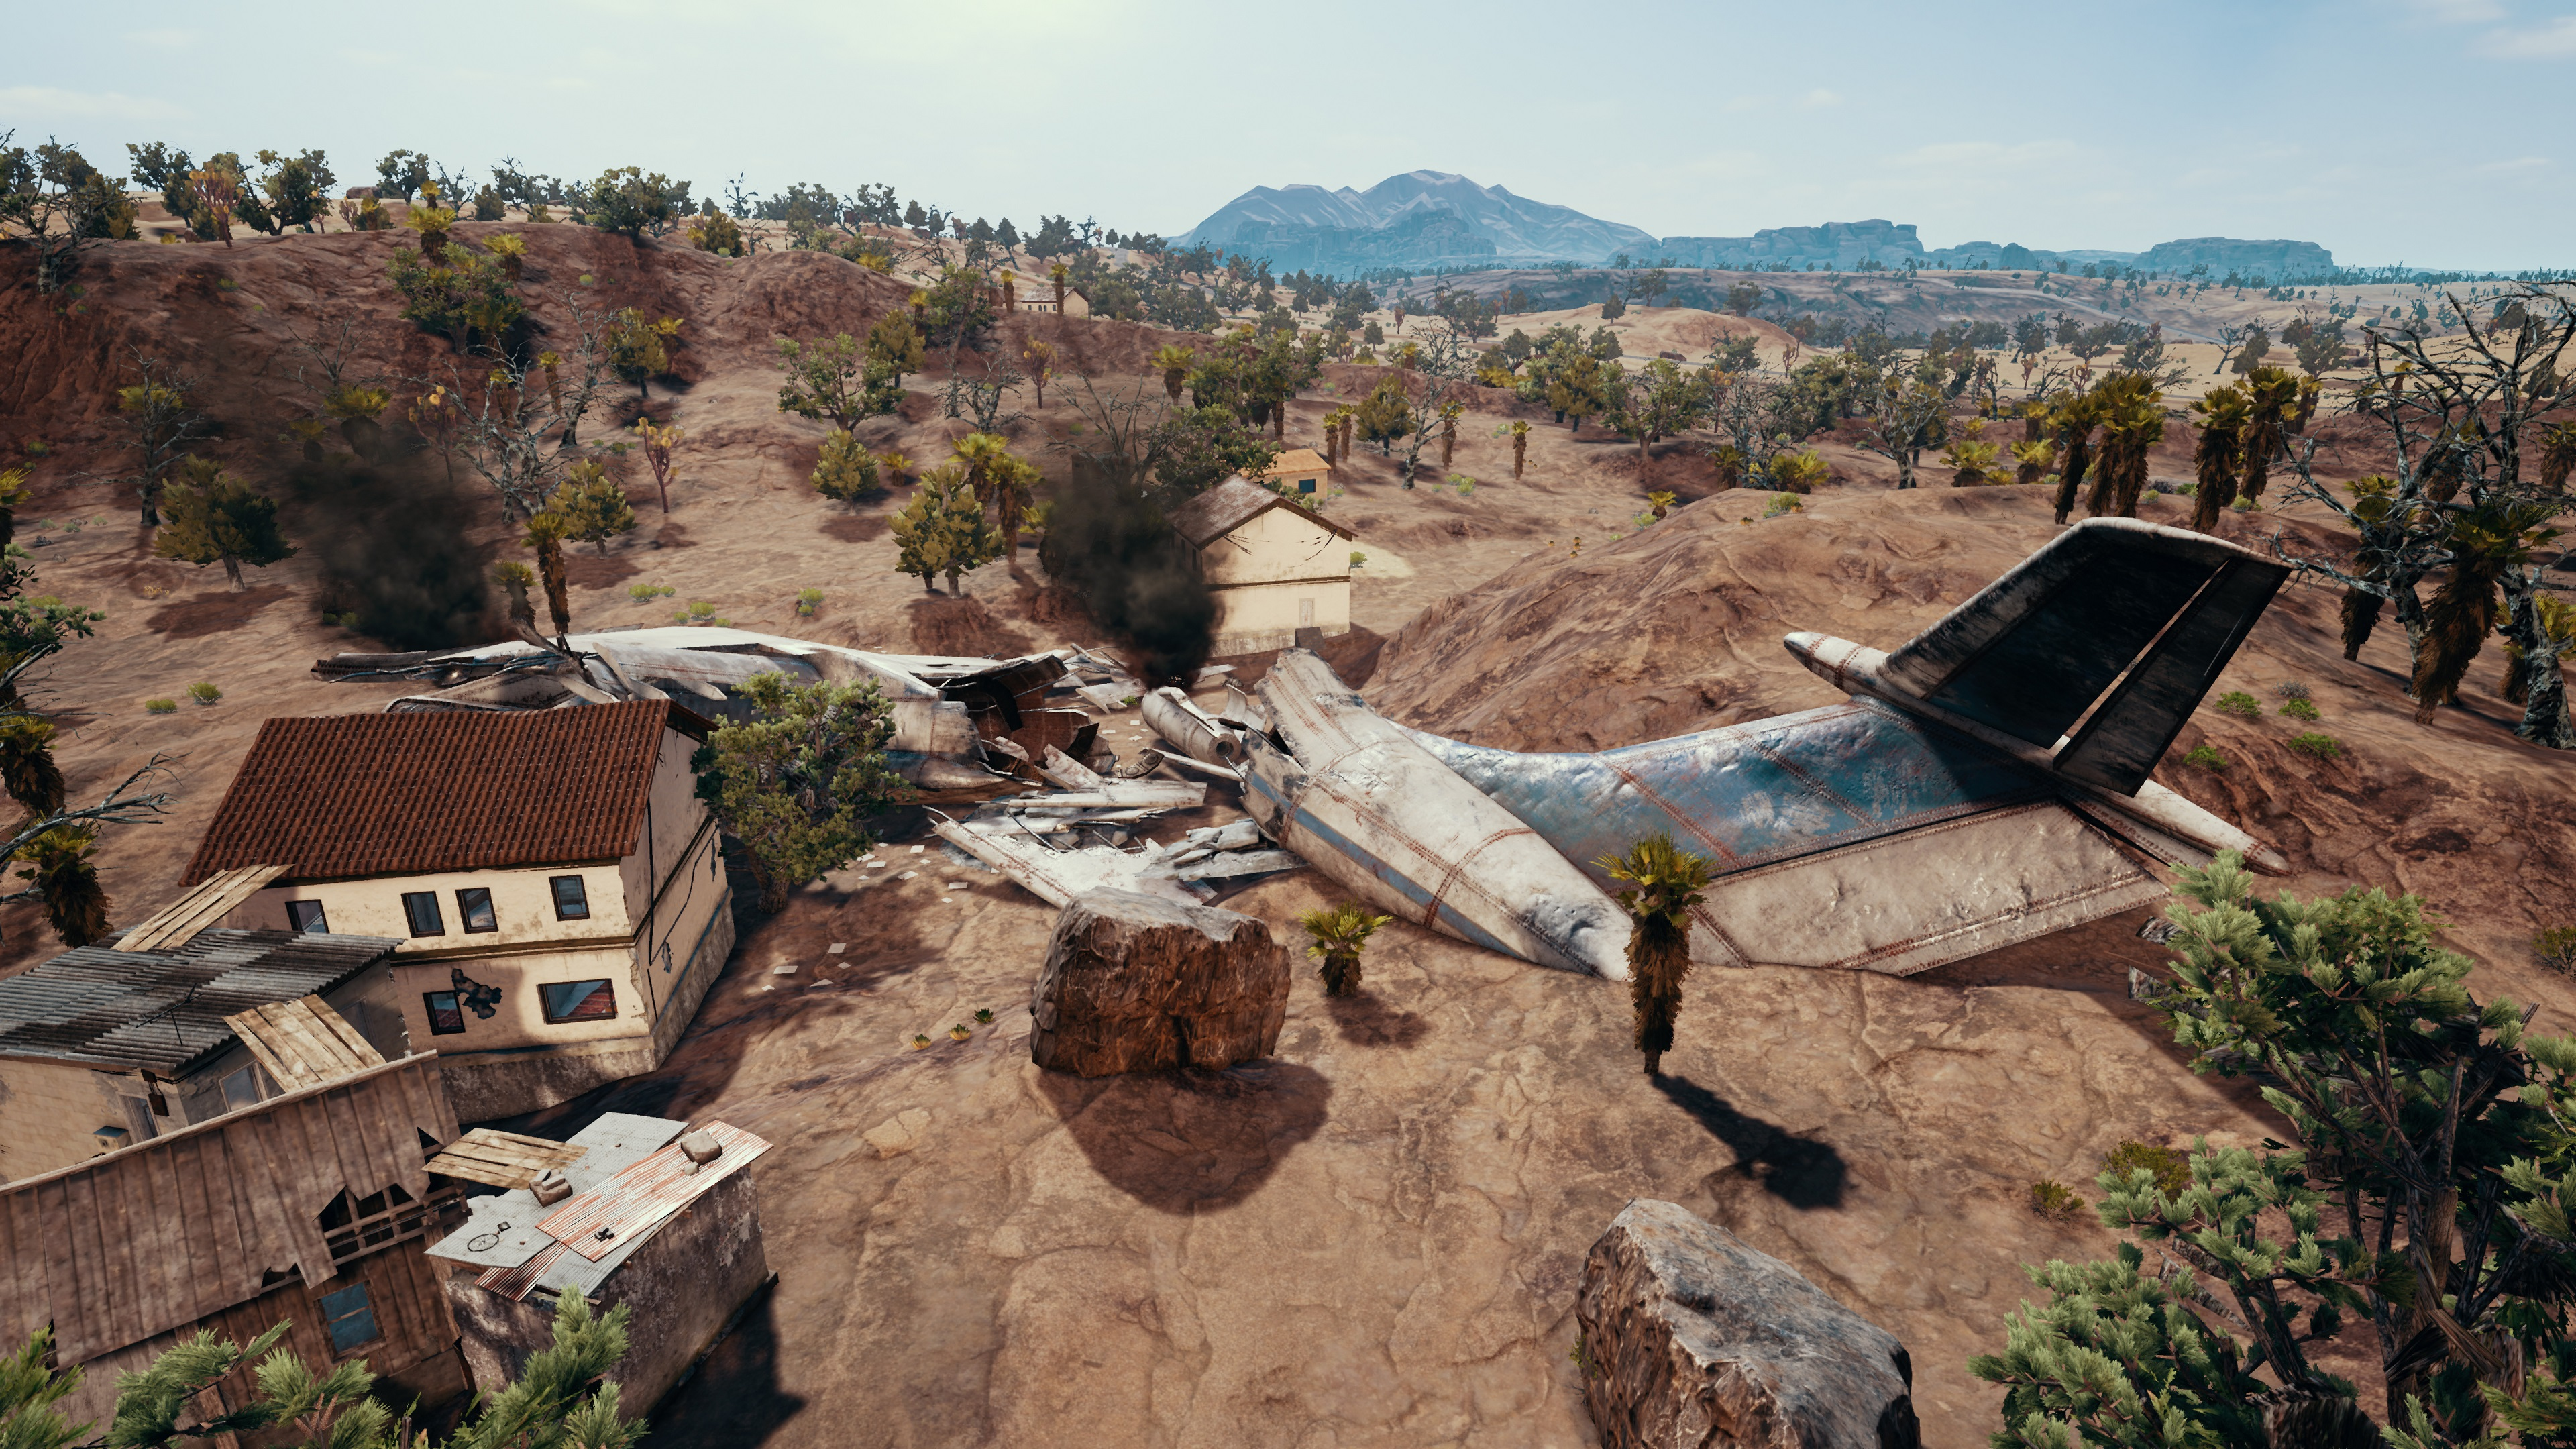 playerunknown s battlegrounds 5k 07025b - Player Unknown's Battlegrounds (PUBG) 4K - Pubg wallpaper phone, pubg wallpaper iphone, pubg wallpaper 1920x1080 hd, pubg hd wallpapers, pubg 4k wallpapers, Player Unknown's Battlegrounds 4k wallpapers